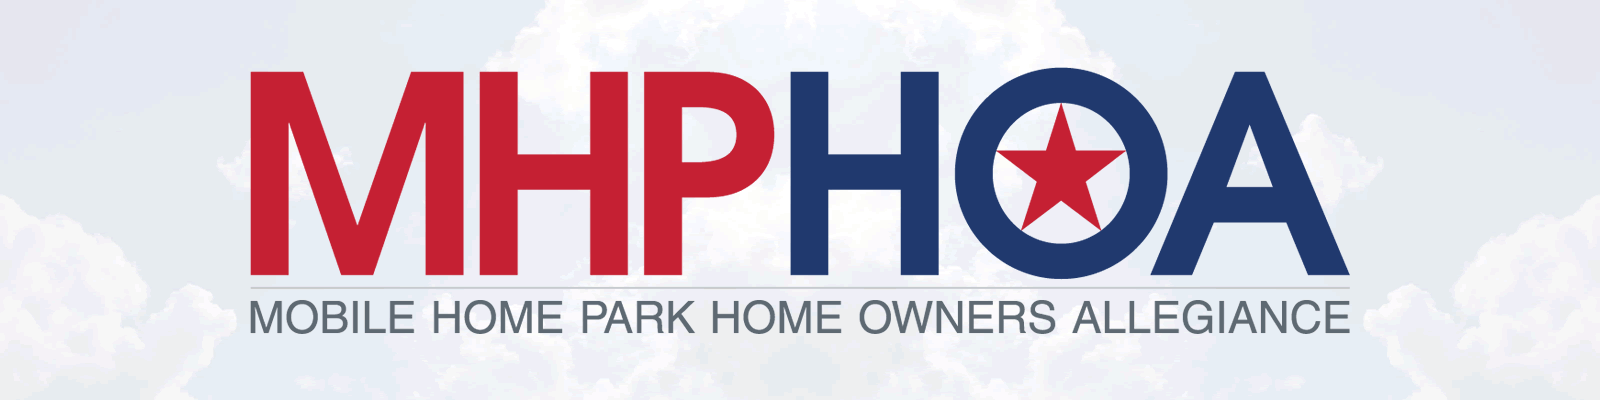 Mobile Home Park Home Owners Allegiance (MHPHOA)